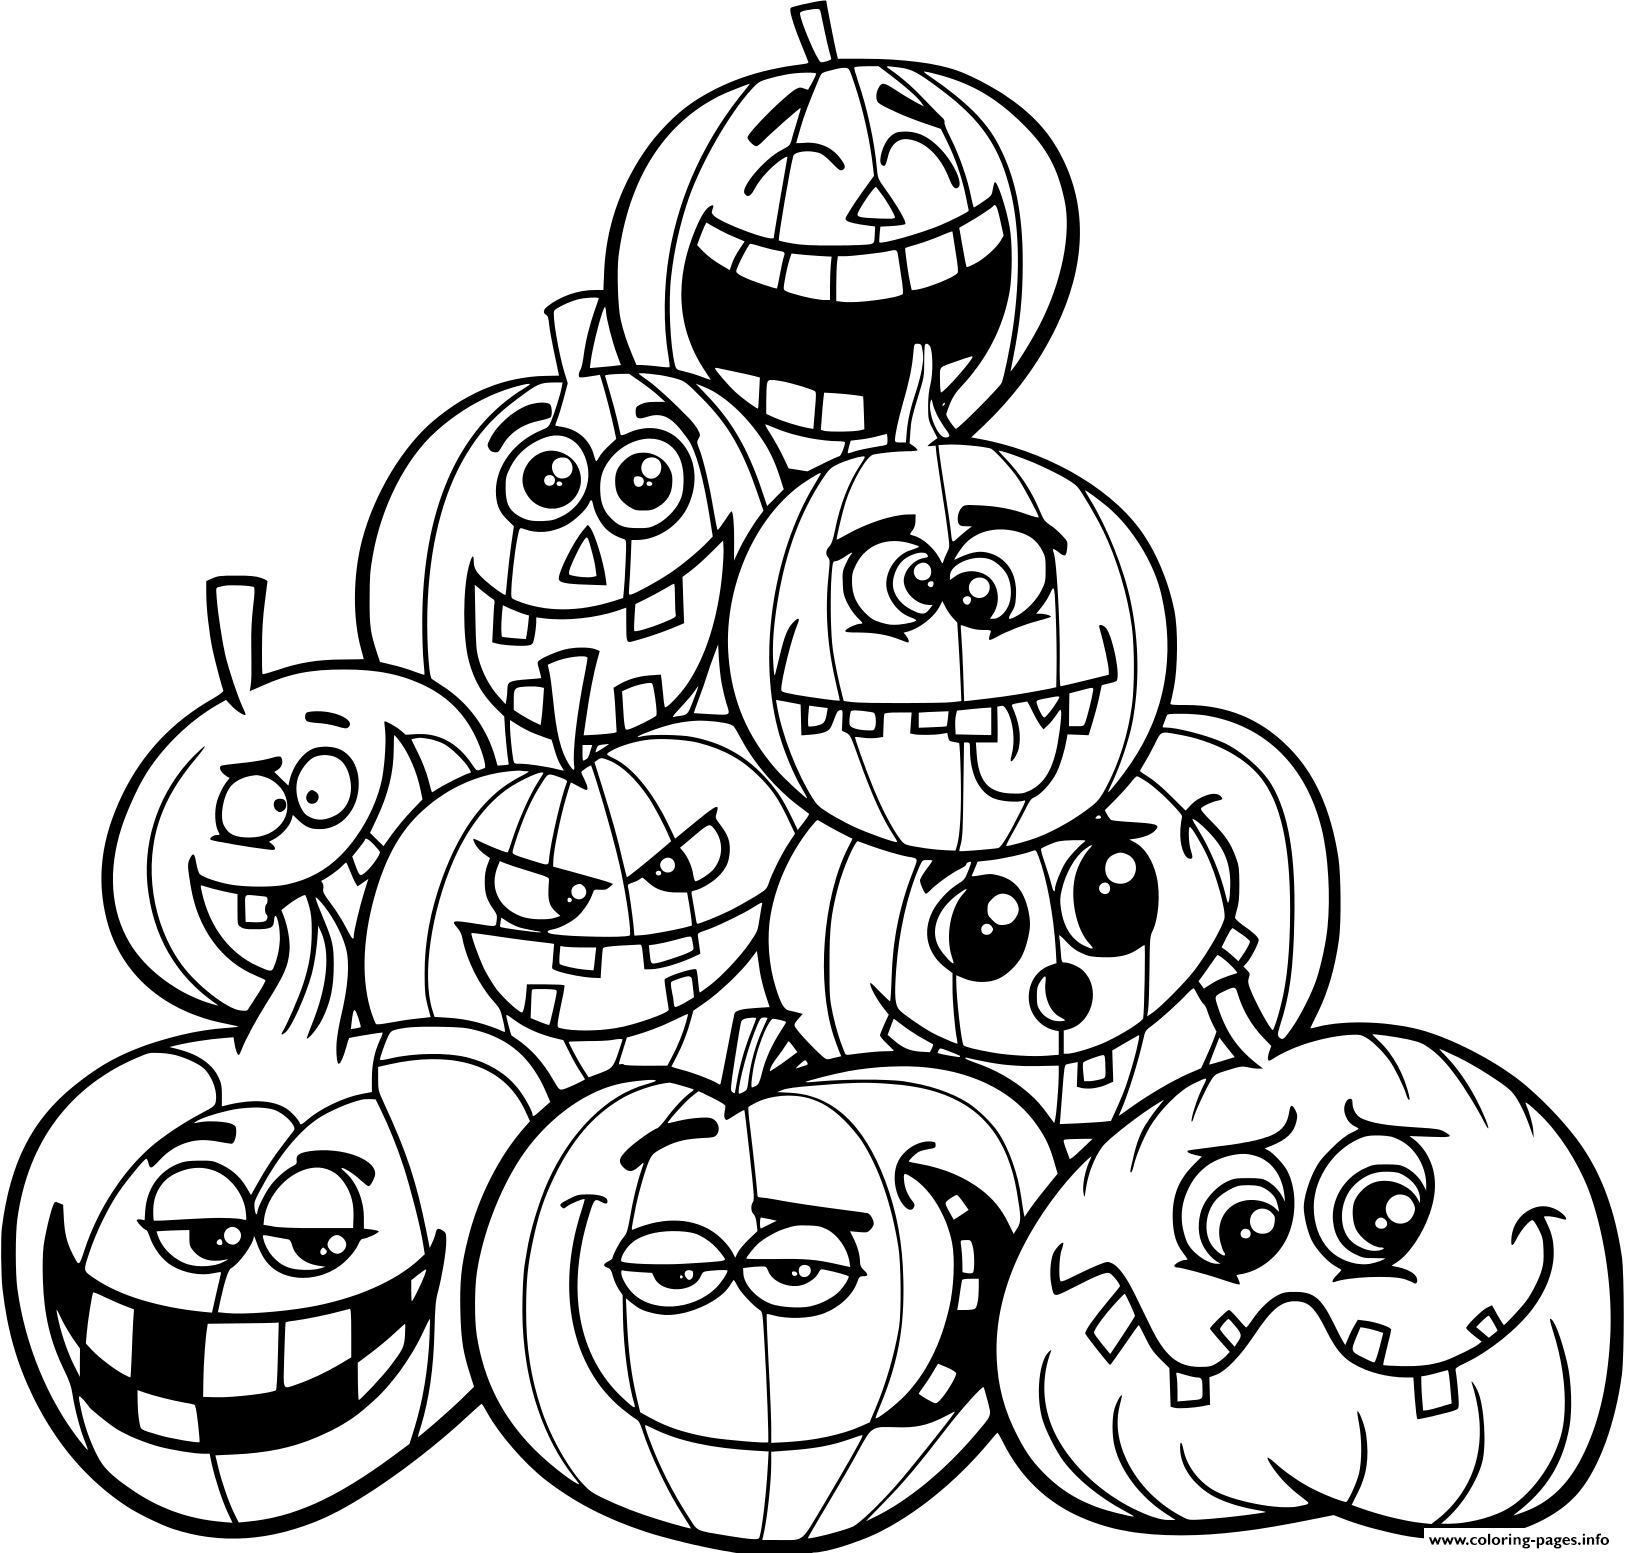 coloring pumpkin halloween clipart halloween scary pumpkin halloween adult coloring pages coloring clipart pumpkin halloween